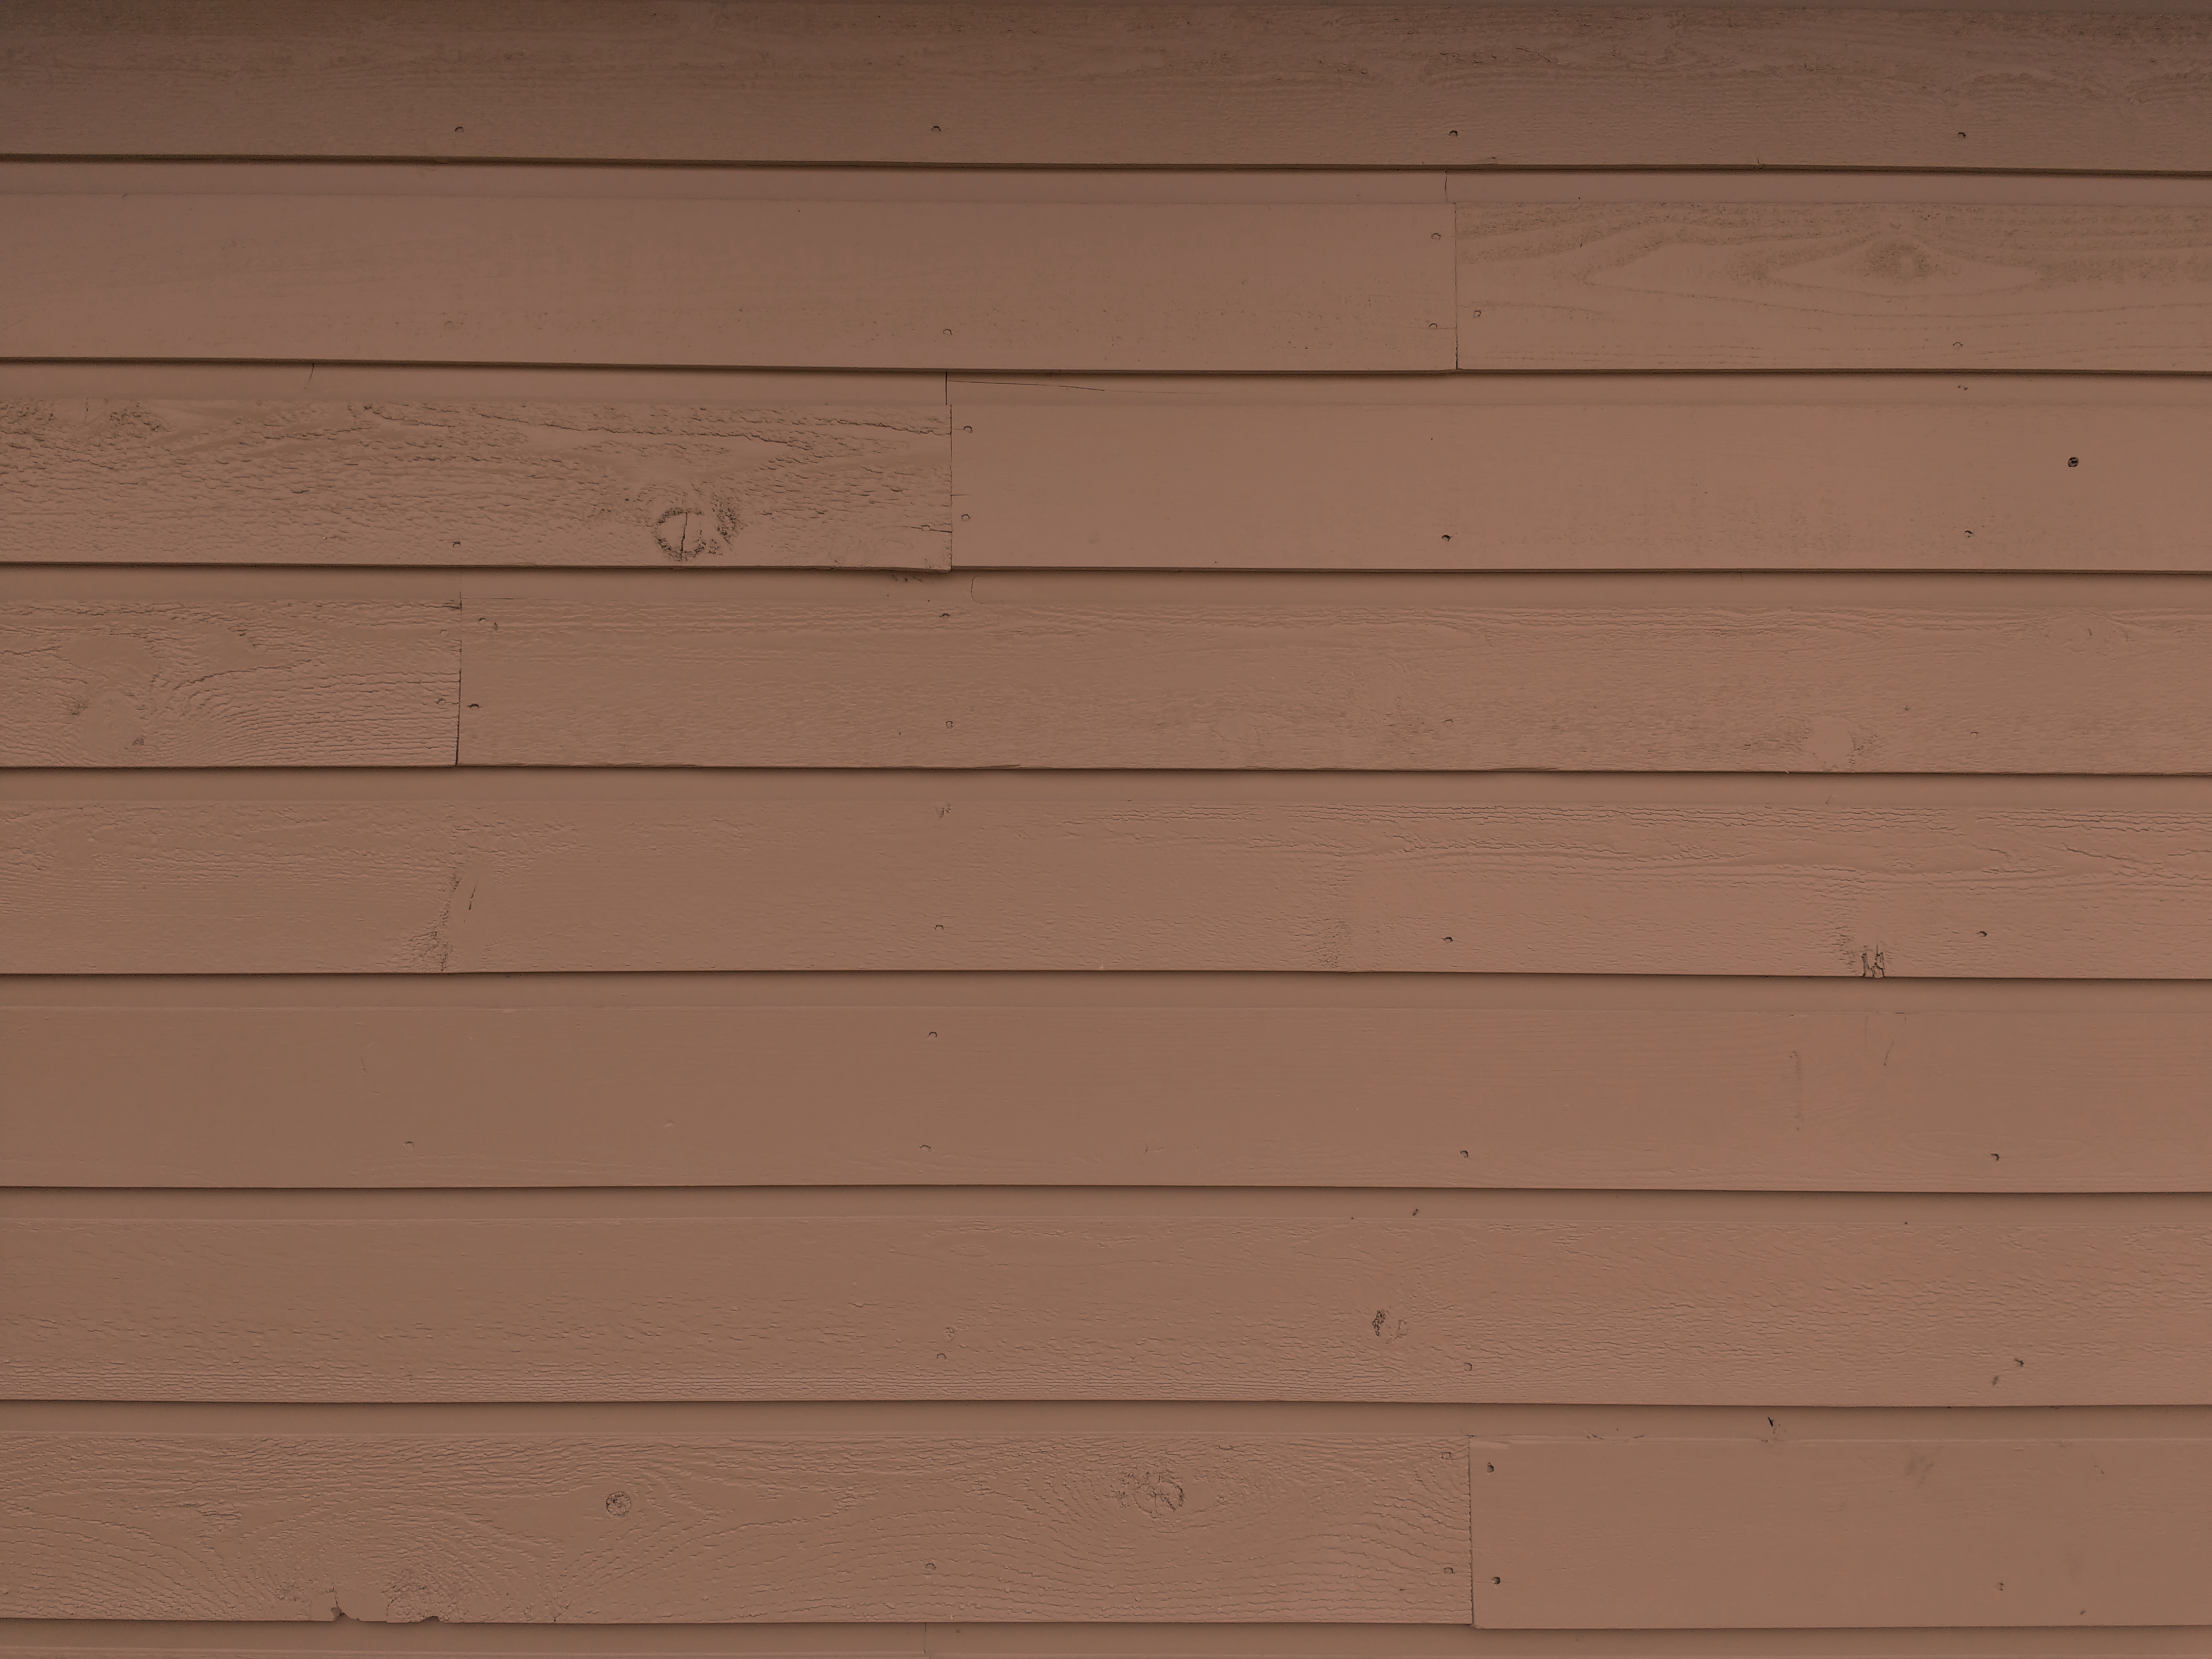 Brown Drop Channel Wood Siding Texture Photos Public Domain